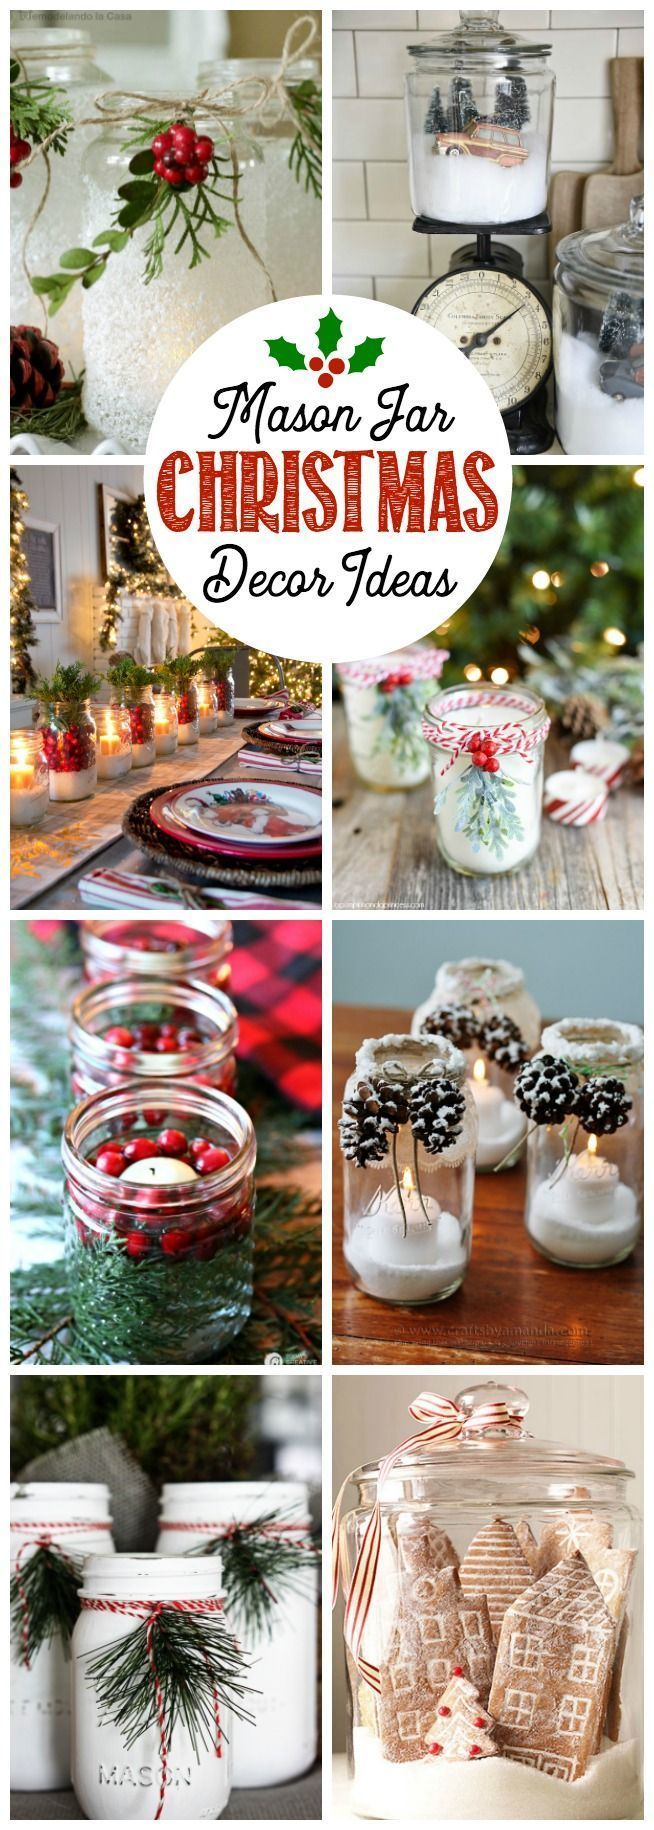 Mrs potts chip christmas decoration - Beautiful And Simple Christmas Decorating Ideas Using Mason Jars Need To Try Some Of These